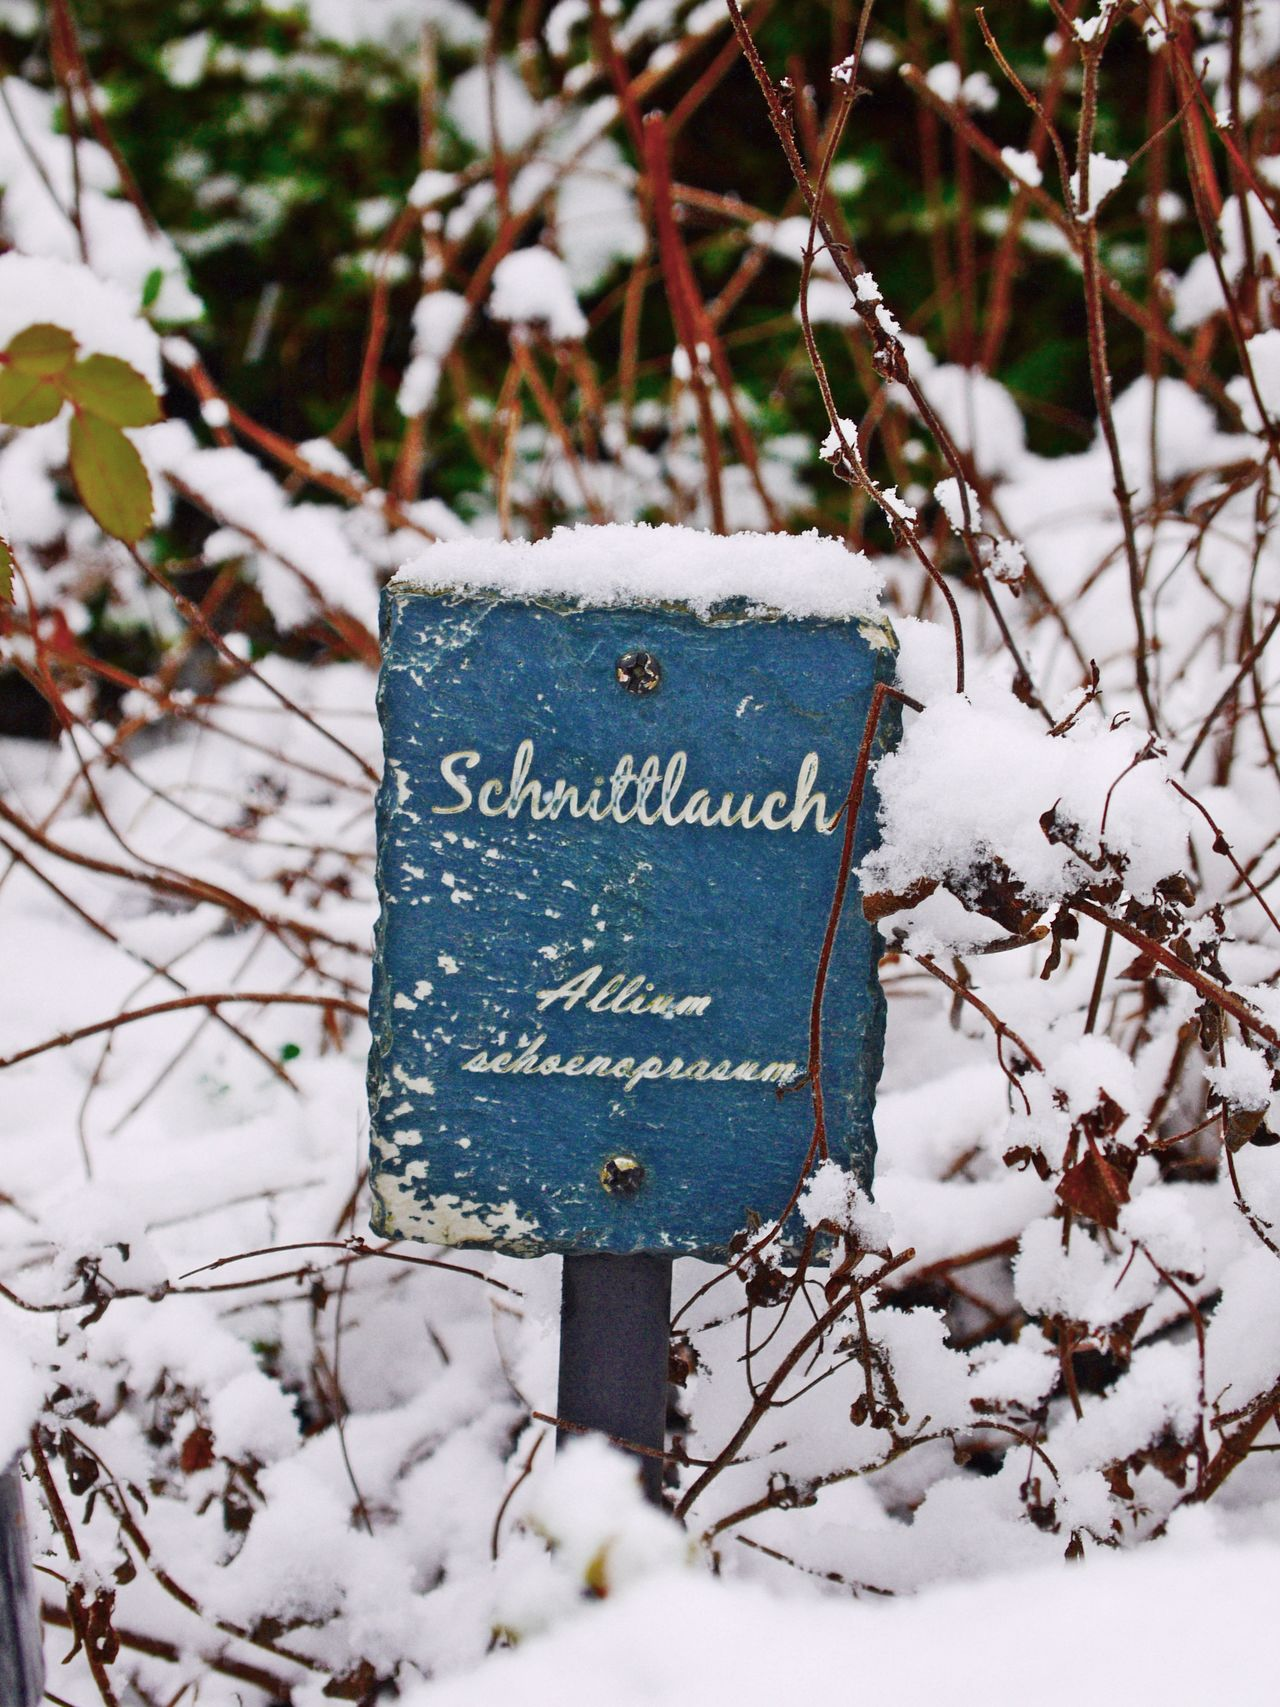 Close-up Cold Temperature Day Forest Herbal Garden Nature No People Outdoors Plant Schnittlauch Signboard Snow Text Tree Winter